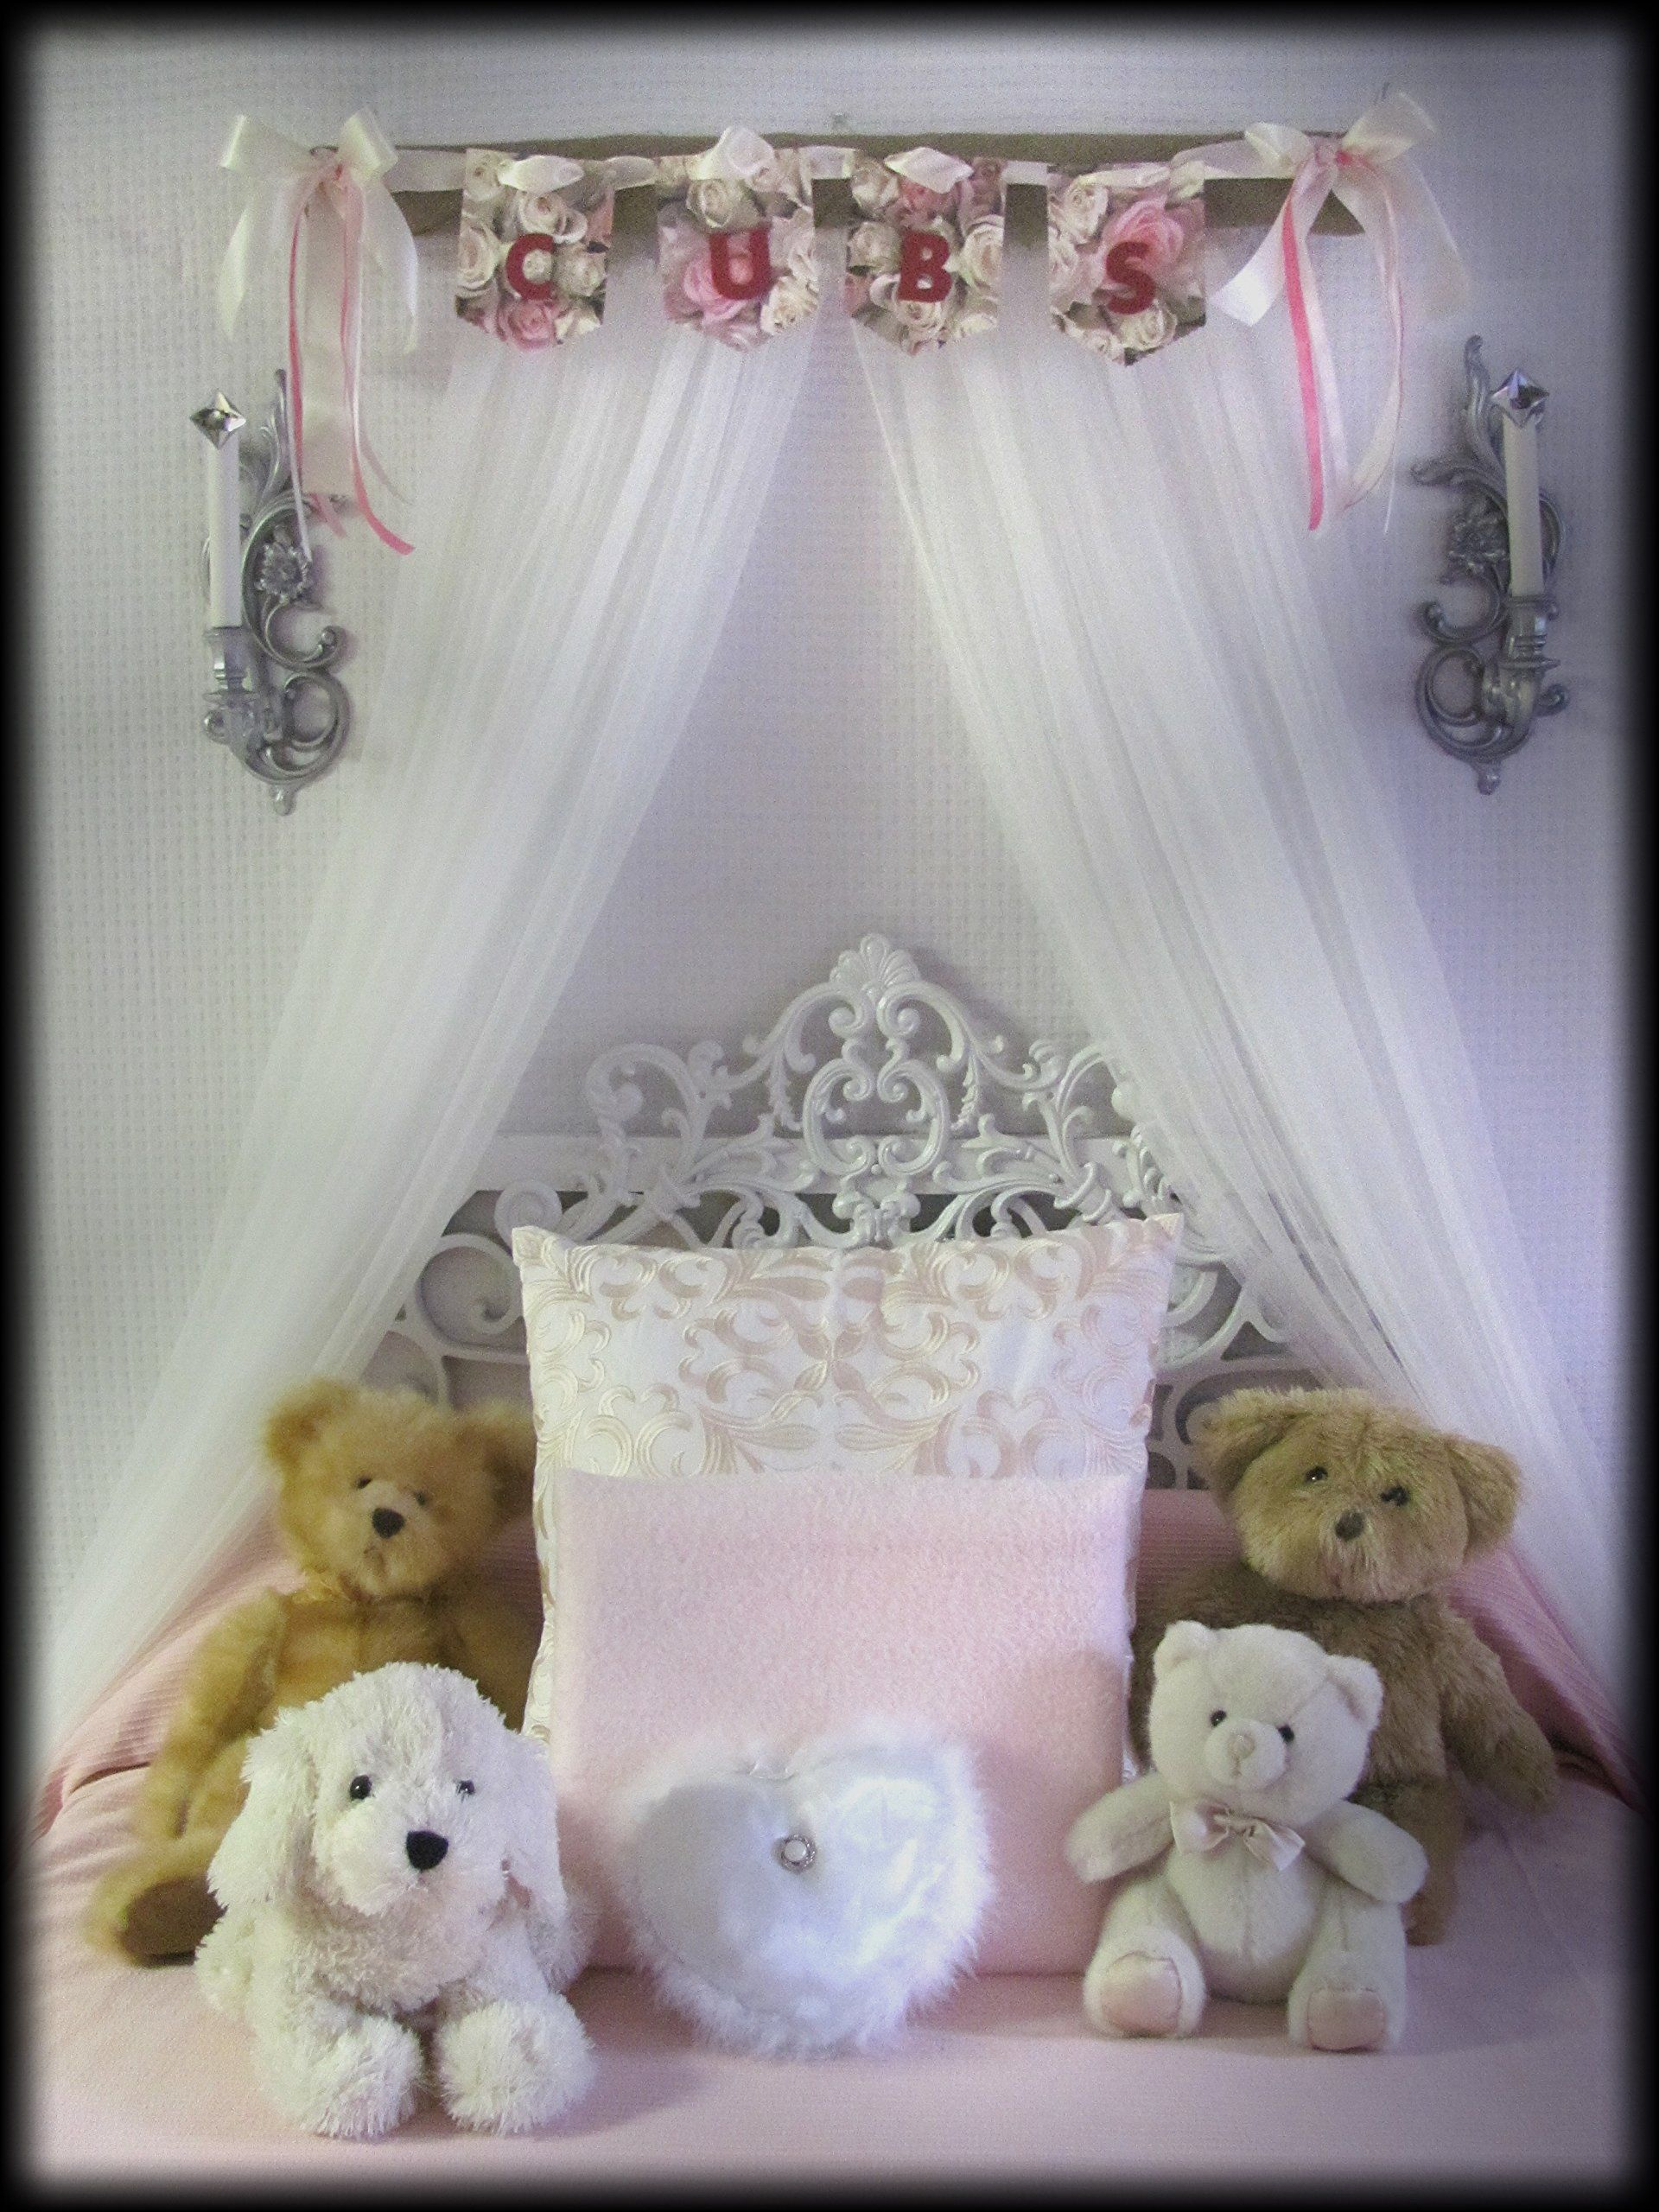 Crib for sale kelowna - Shabby Chic Princess Bed Crown Canopy Crib Baby Nursery Decor Princess Girl S Bedroom Free White Sale